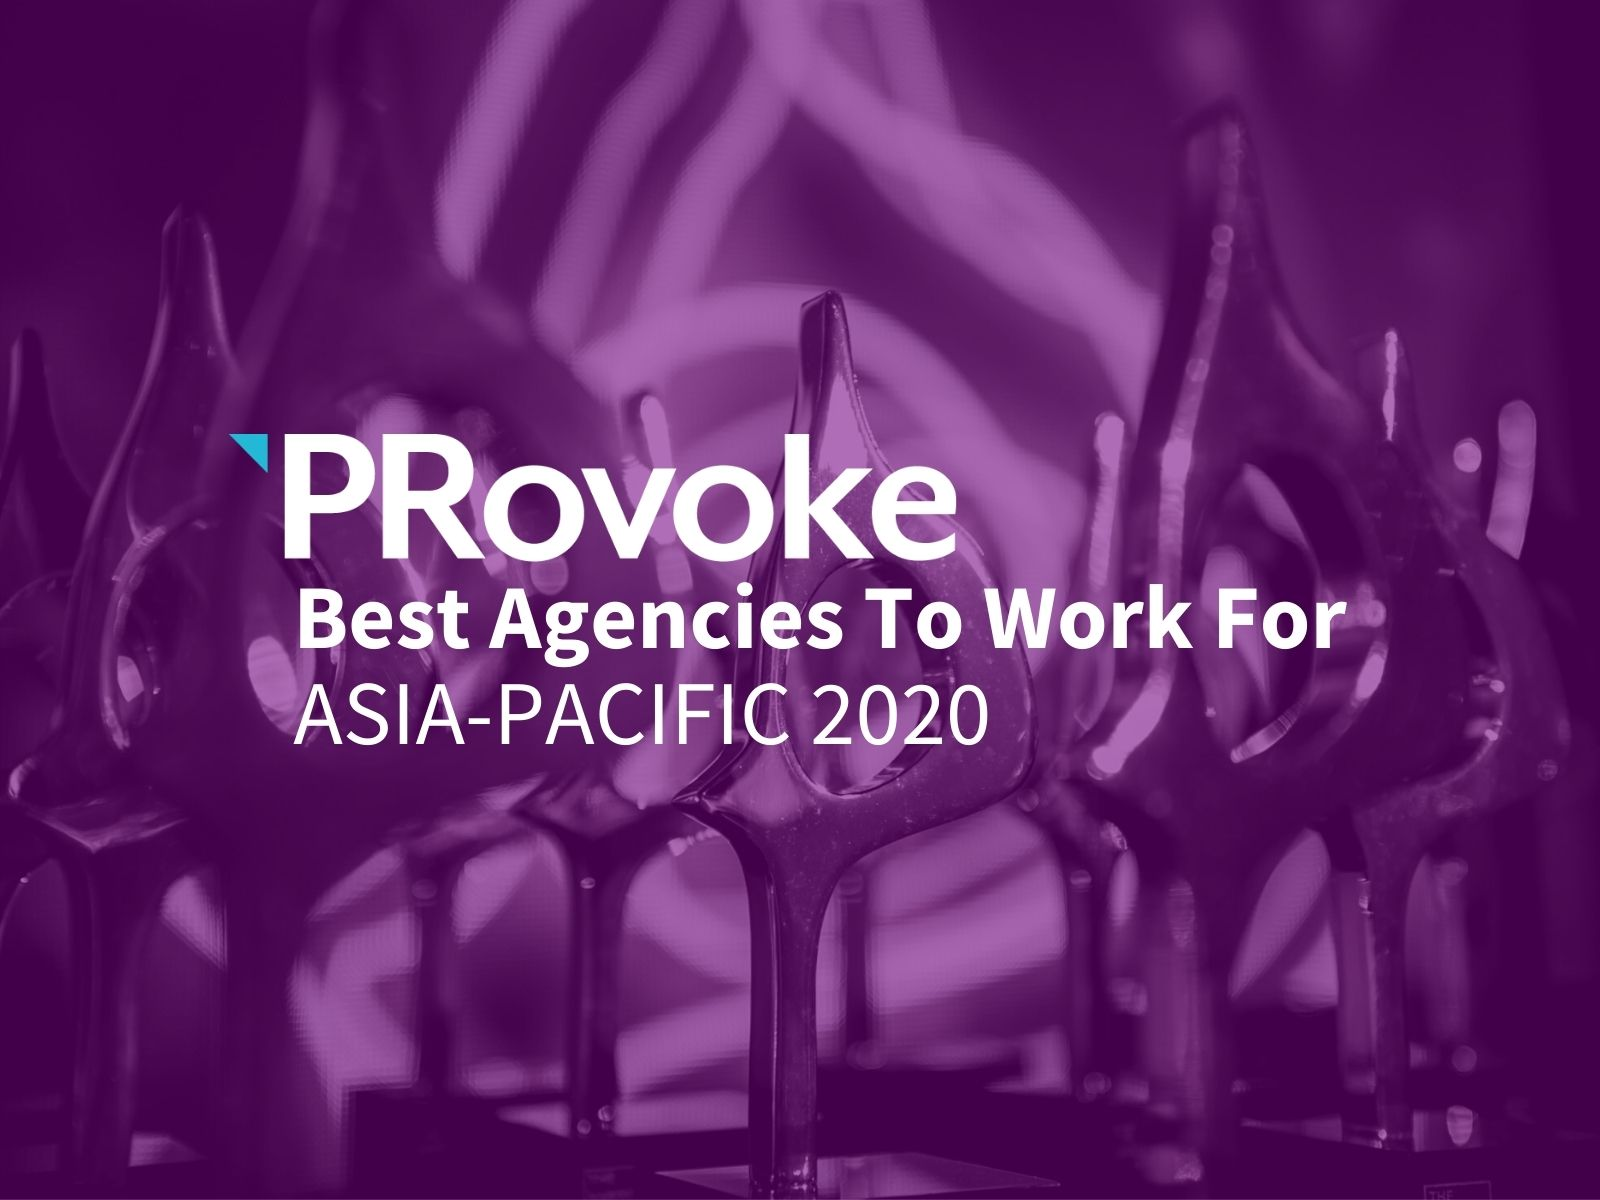 Best Agencies to Work For In Asia-Pacific — 2020 Rankings Revealed